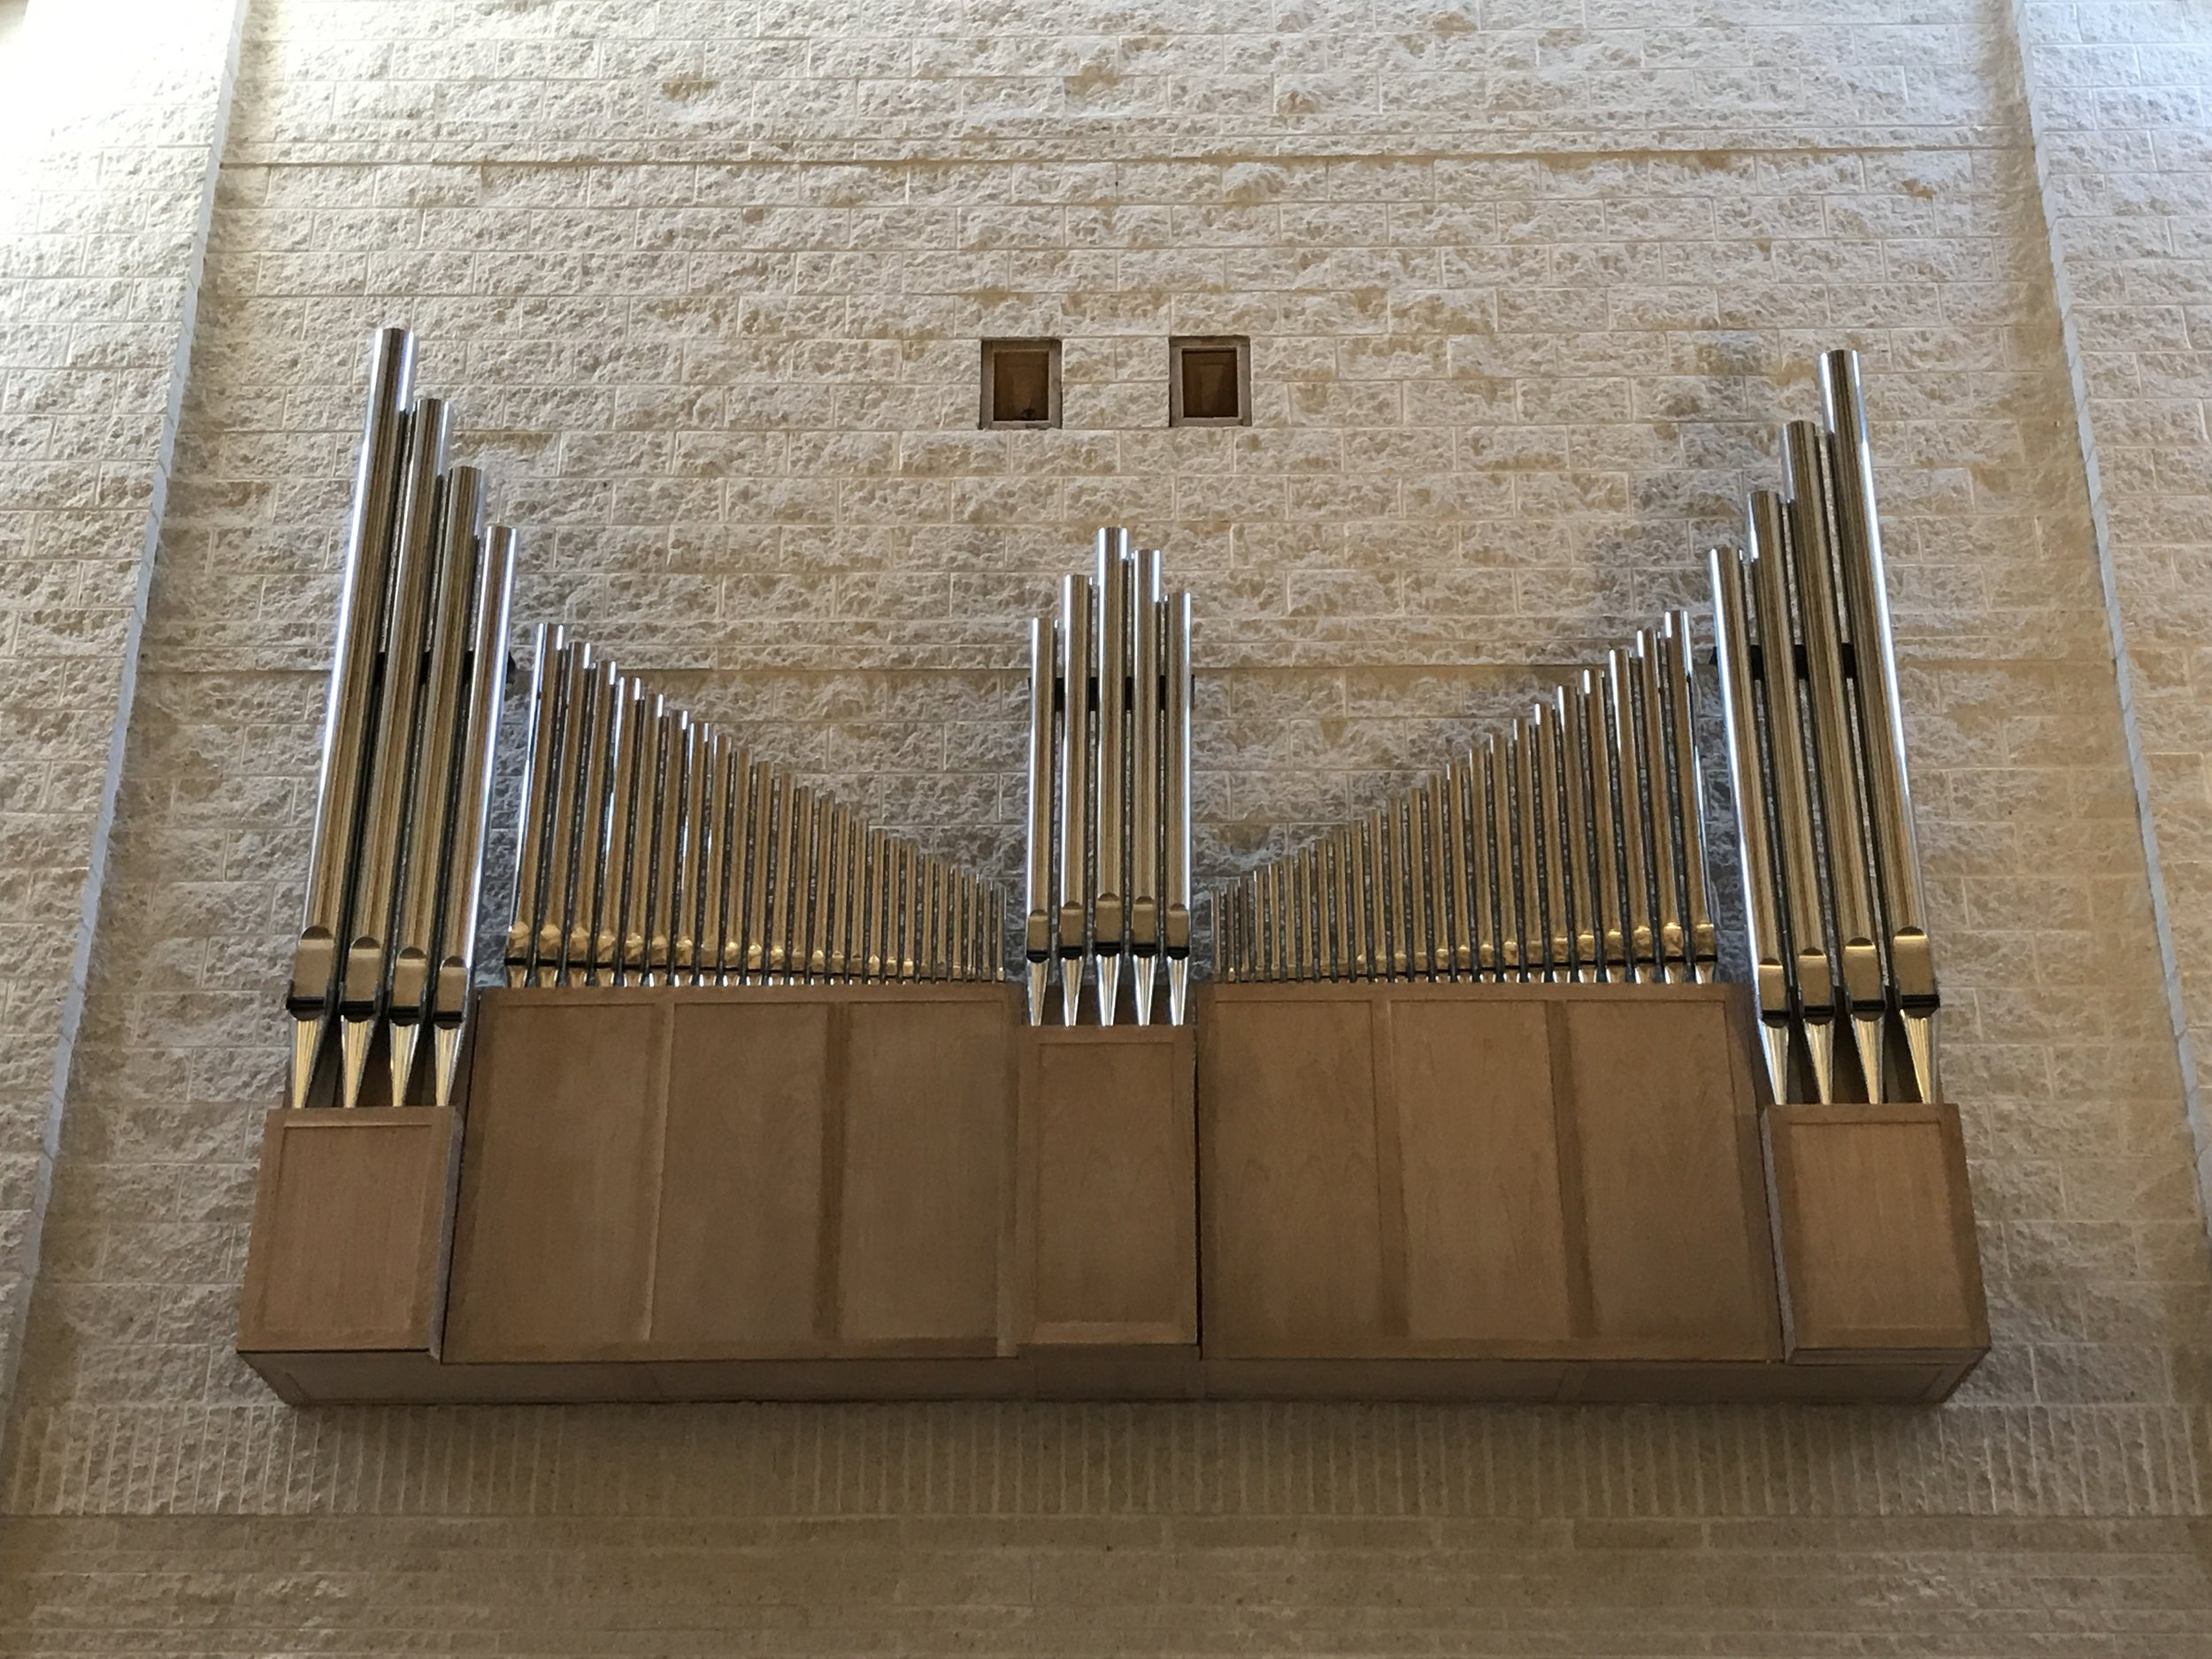 Principal rank of pipes on the back wall of sanctuary.